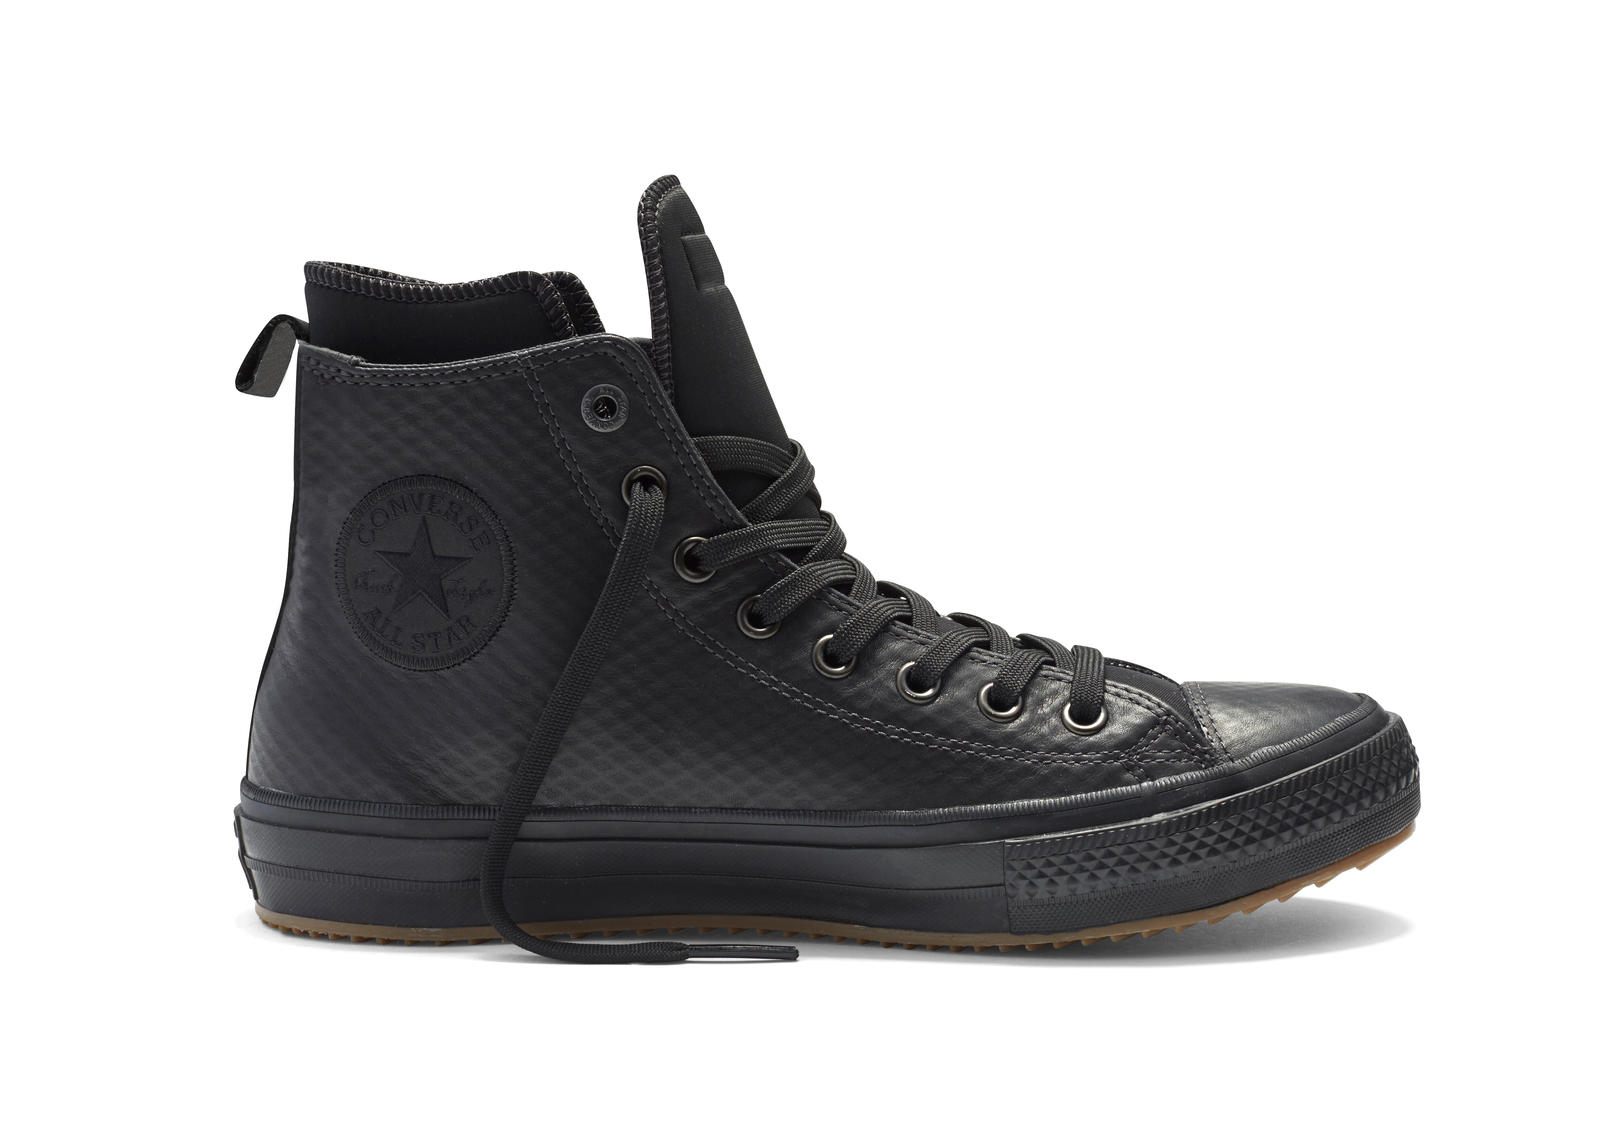 ea1e1f093b21 Converse Debuts New Counter Climate Boot Collection -